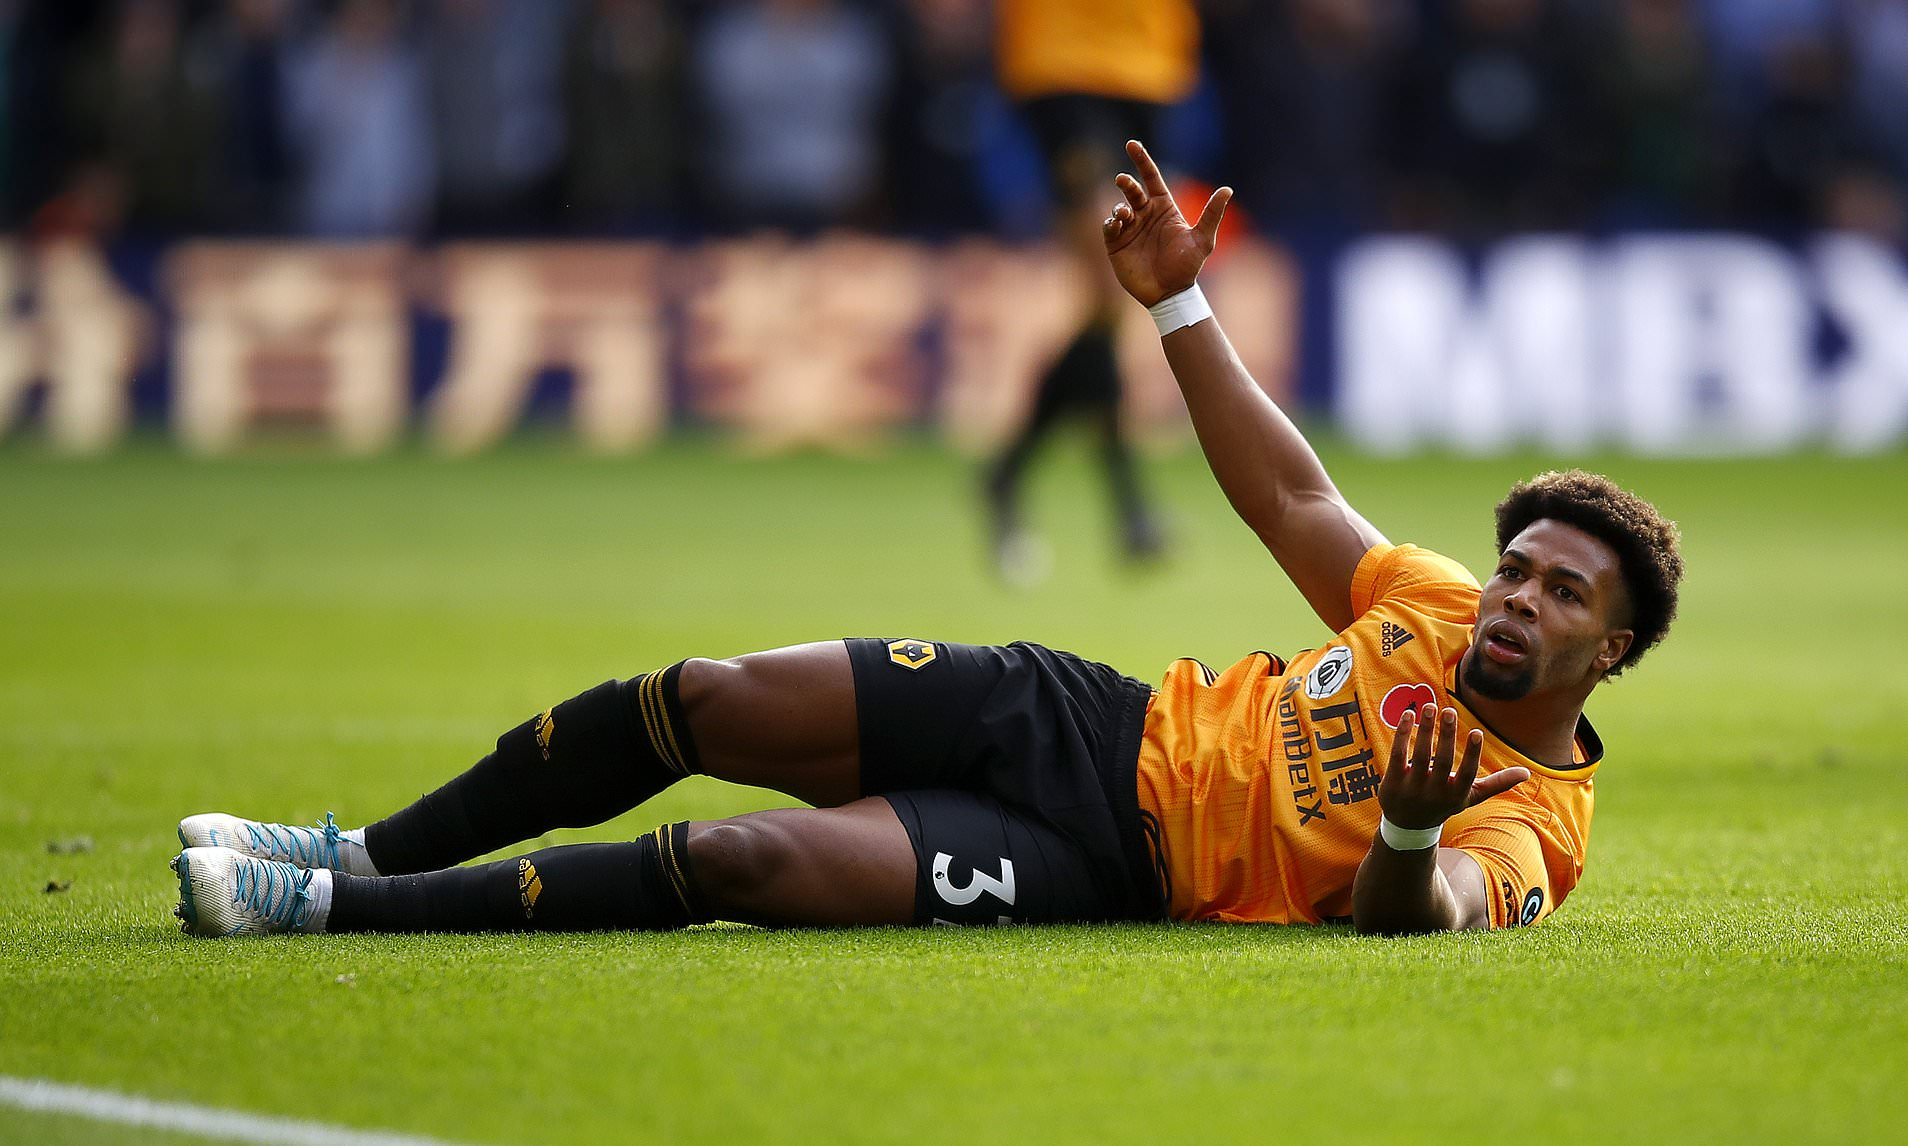 THREAD: Every player to be booked for fouling Adama Traore this season 👇 #WWFC https://t.co/vqFlQNgWum